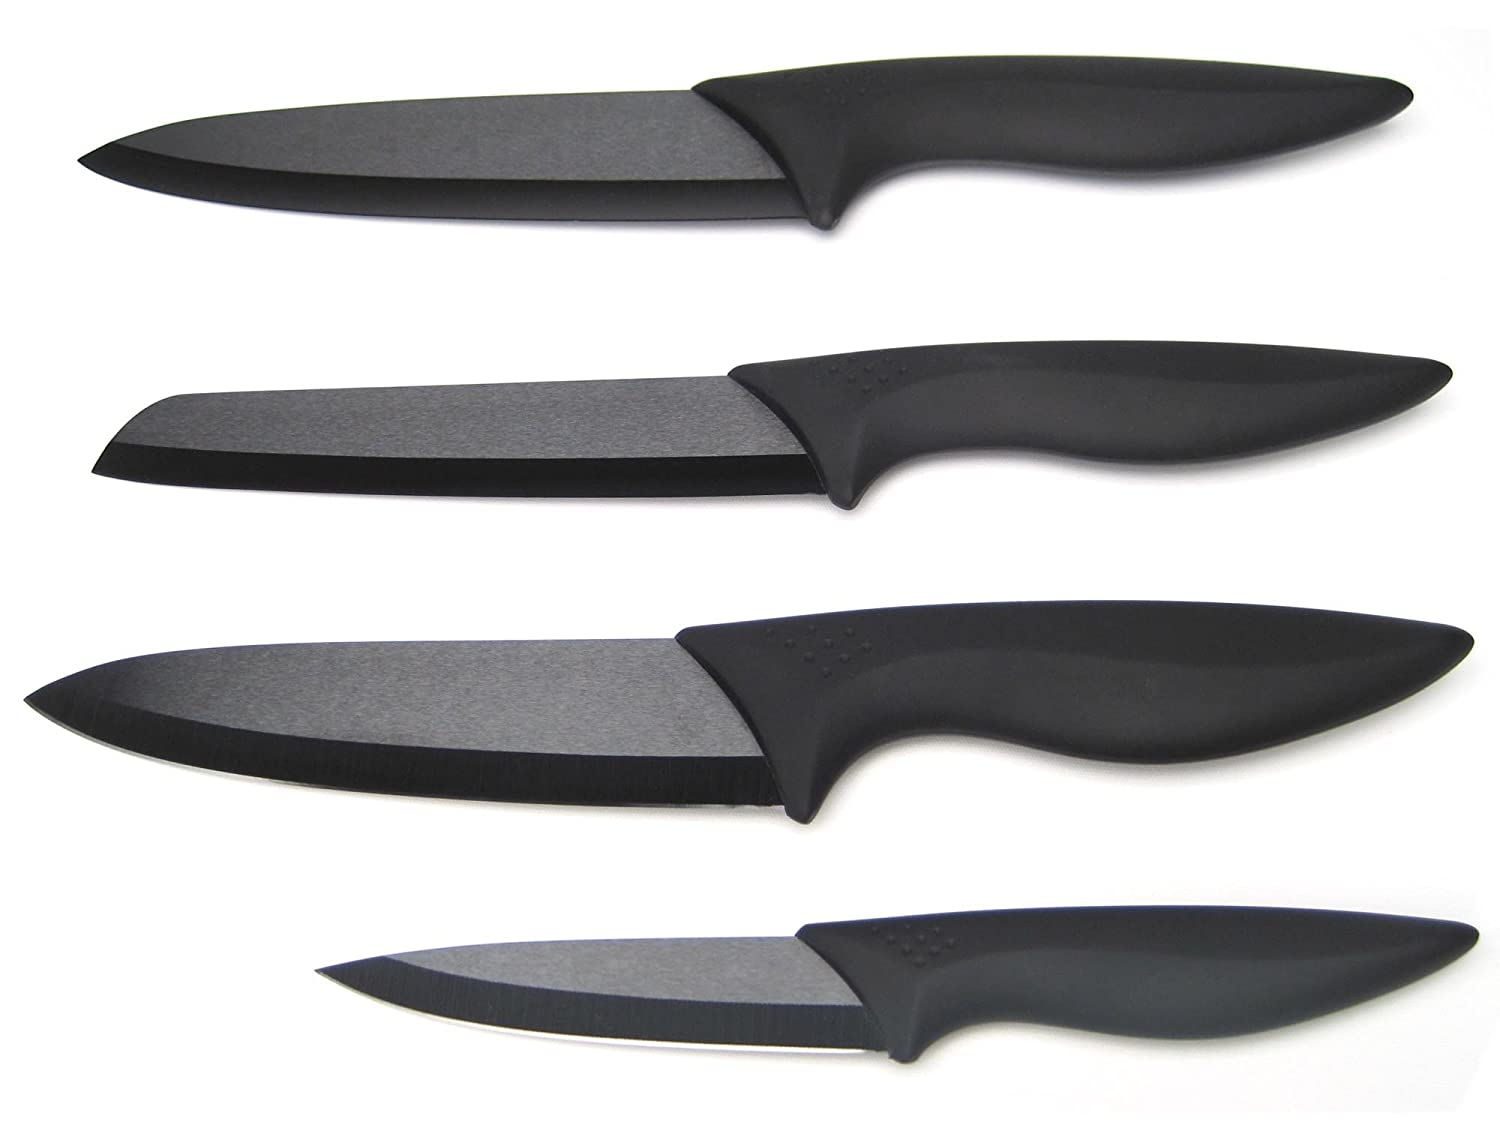 Ceramic Knives with Black Blades, Black Handles - set of 4 (Couteau ...